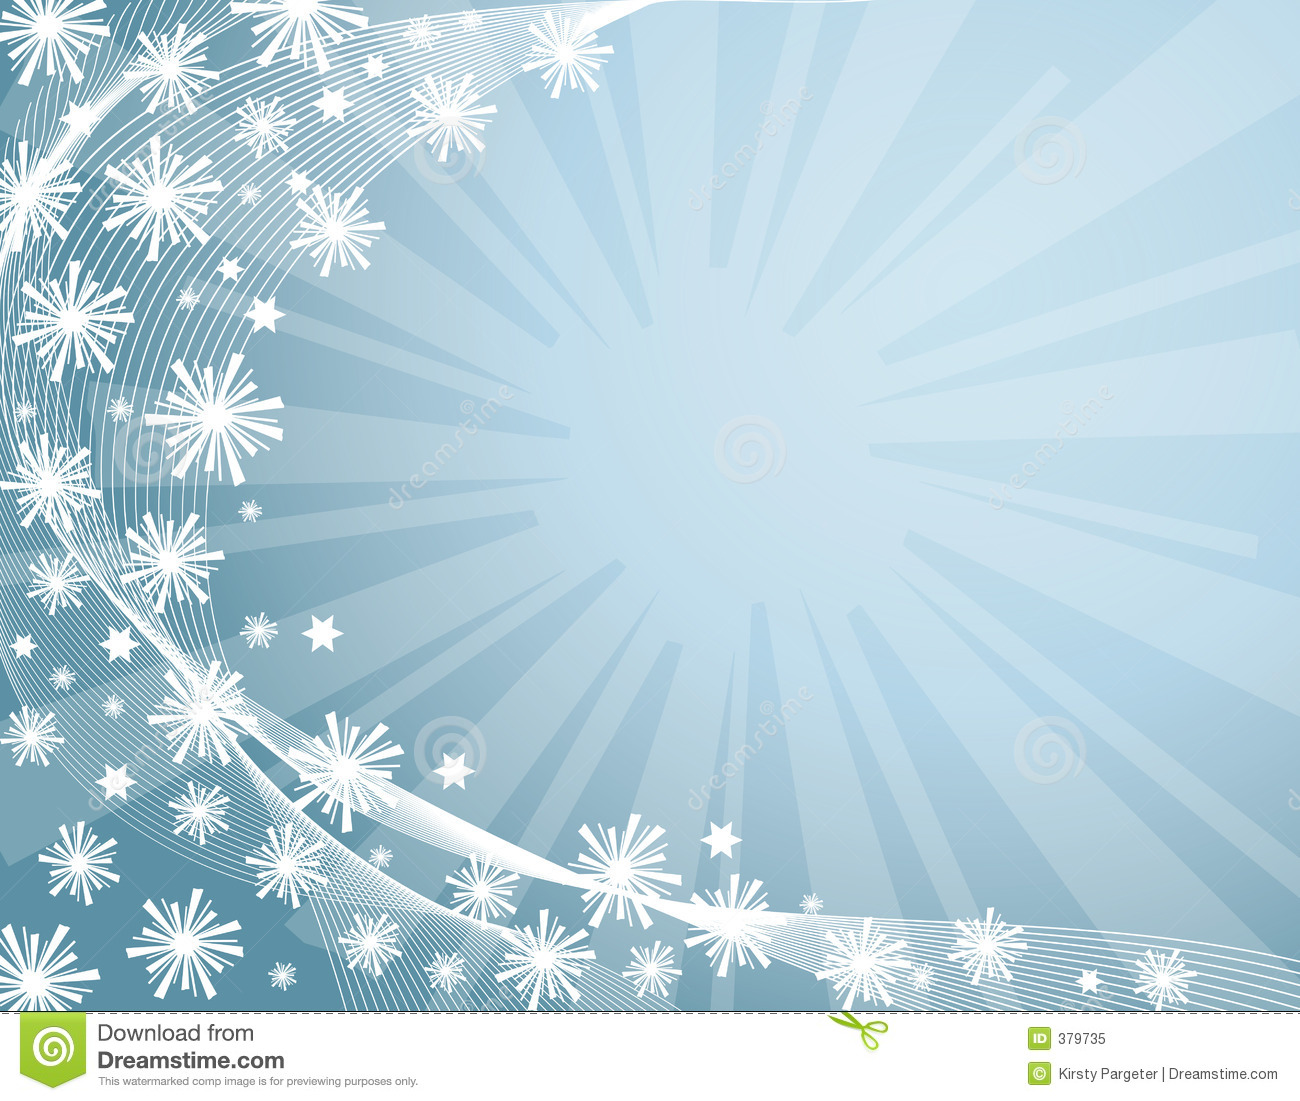 Free Winter Background Images - WallpaperSafari